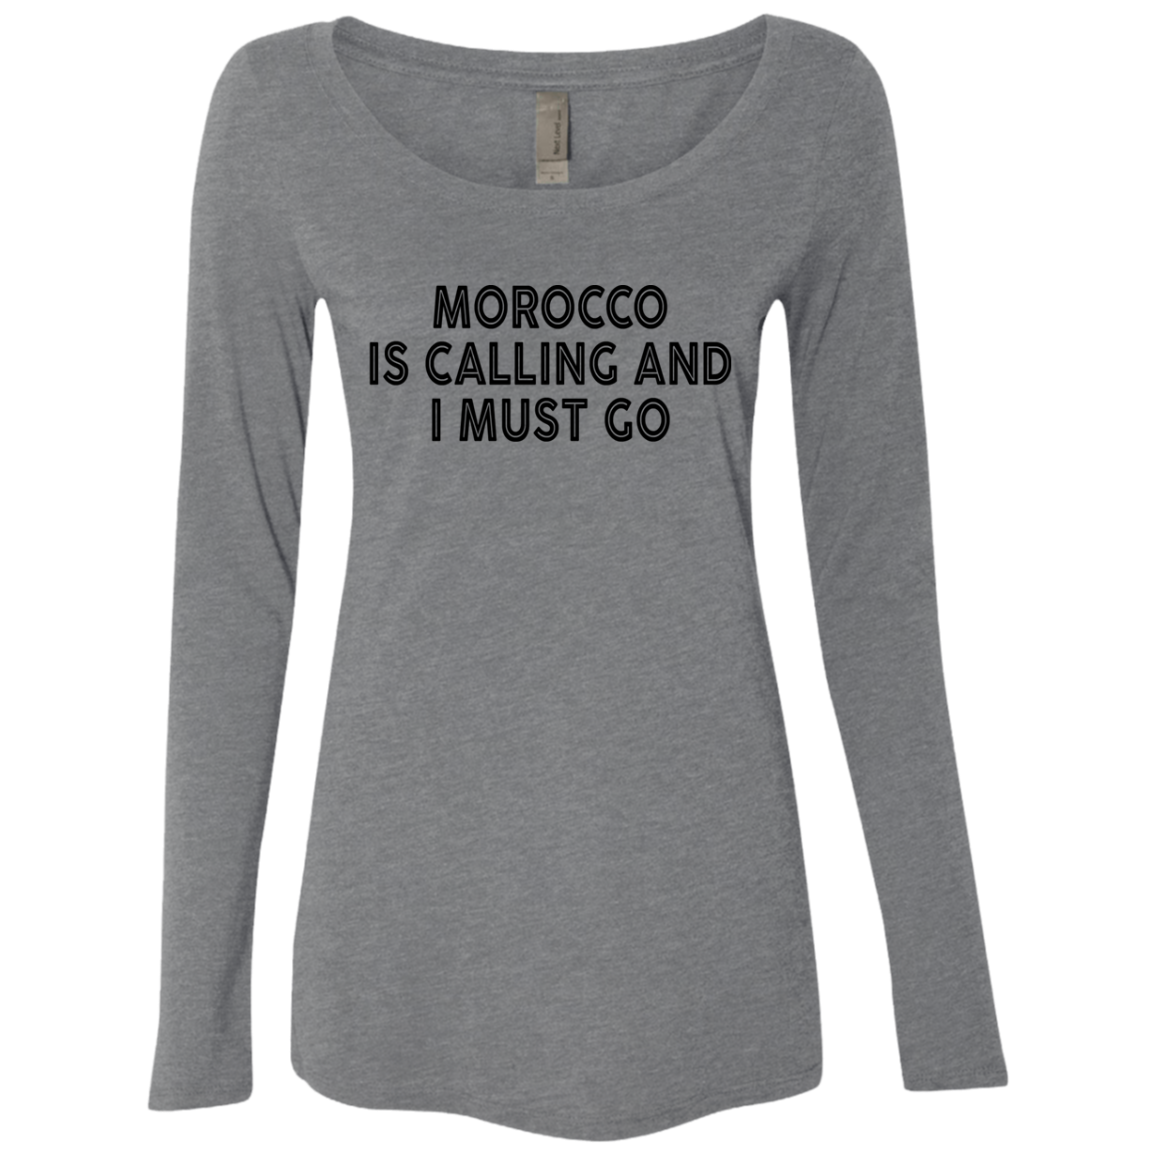 Morocco Is Calling And I Must Go Women's Long Sleeve Tee